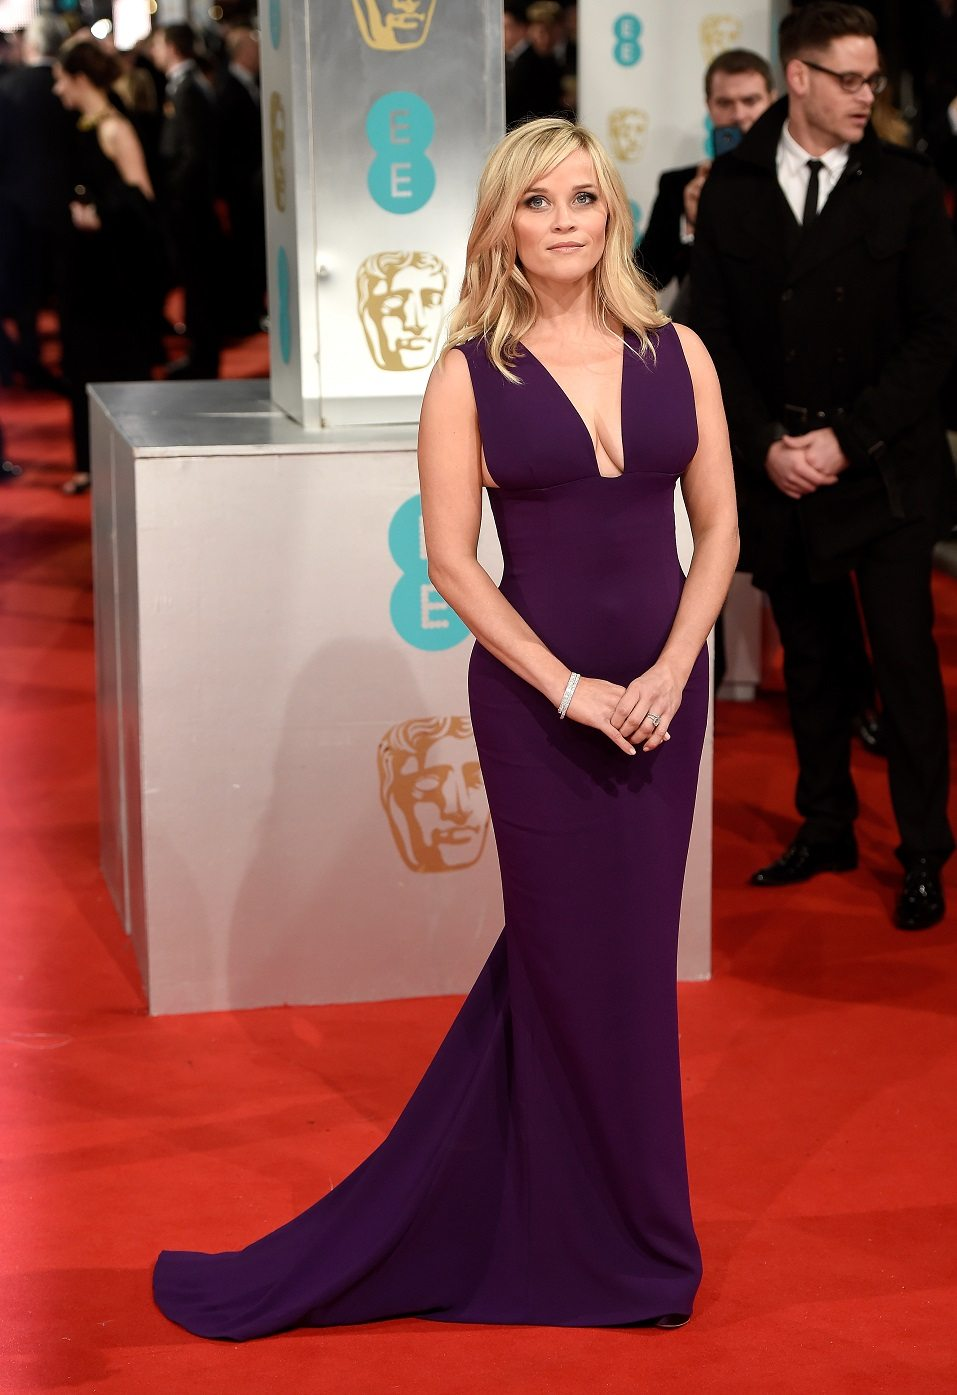 Reese Witherspoon attends the EE British Academy Film Awards at The Royal Opera House